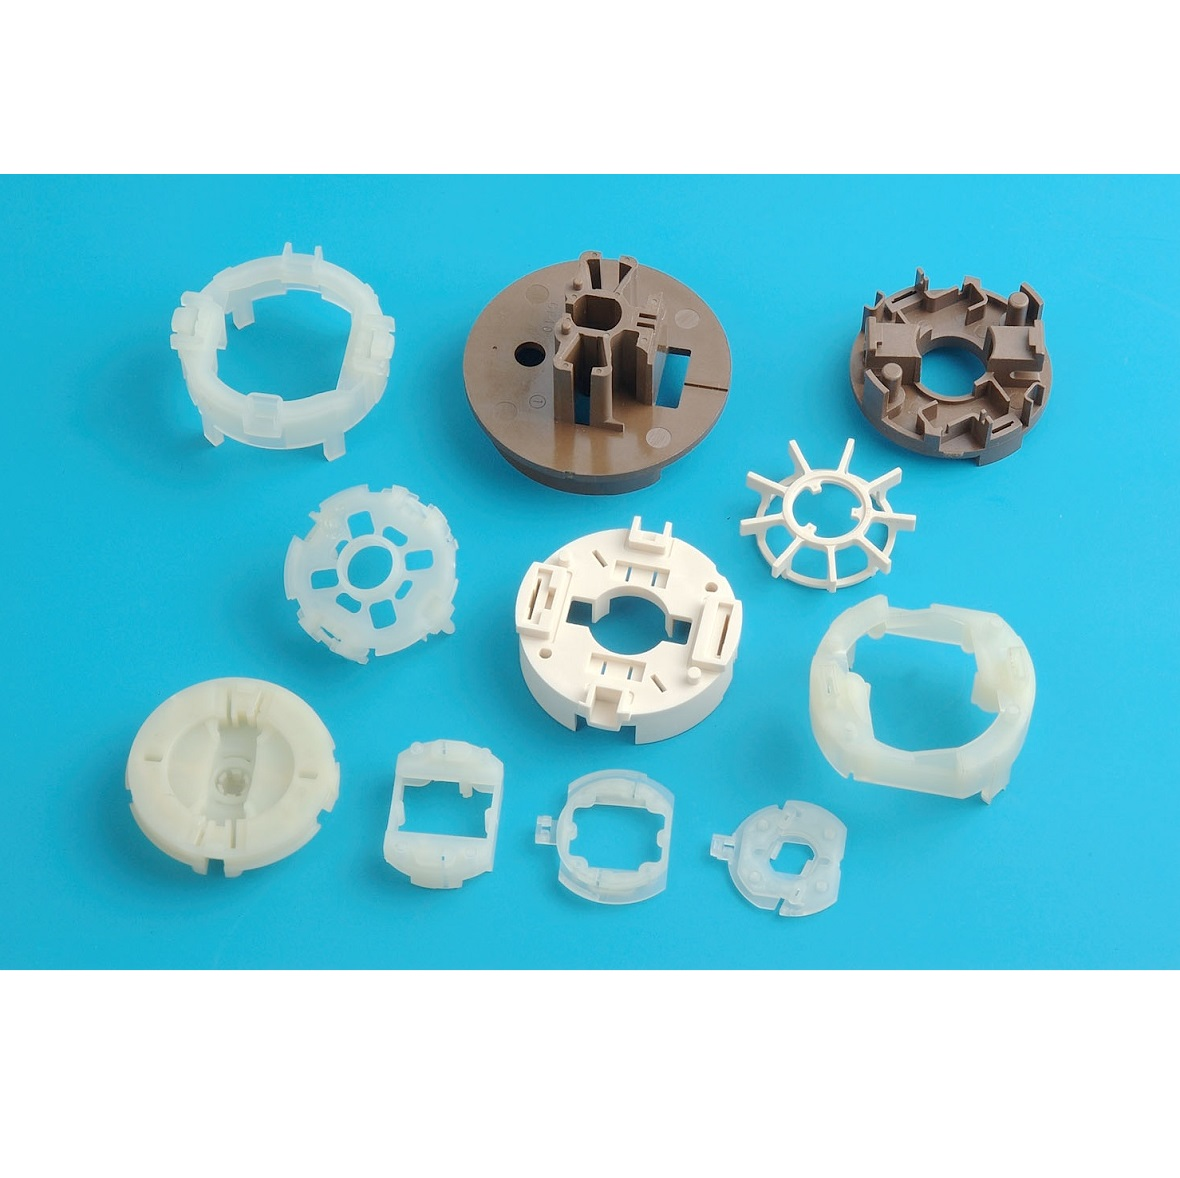 Micro motor-Molding Parts for Micro Servo Motor, Mobile phone, Bearing